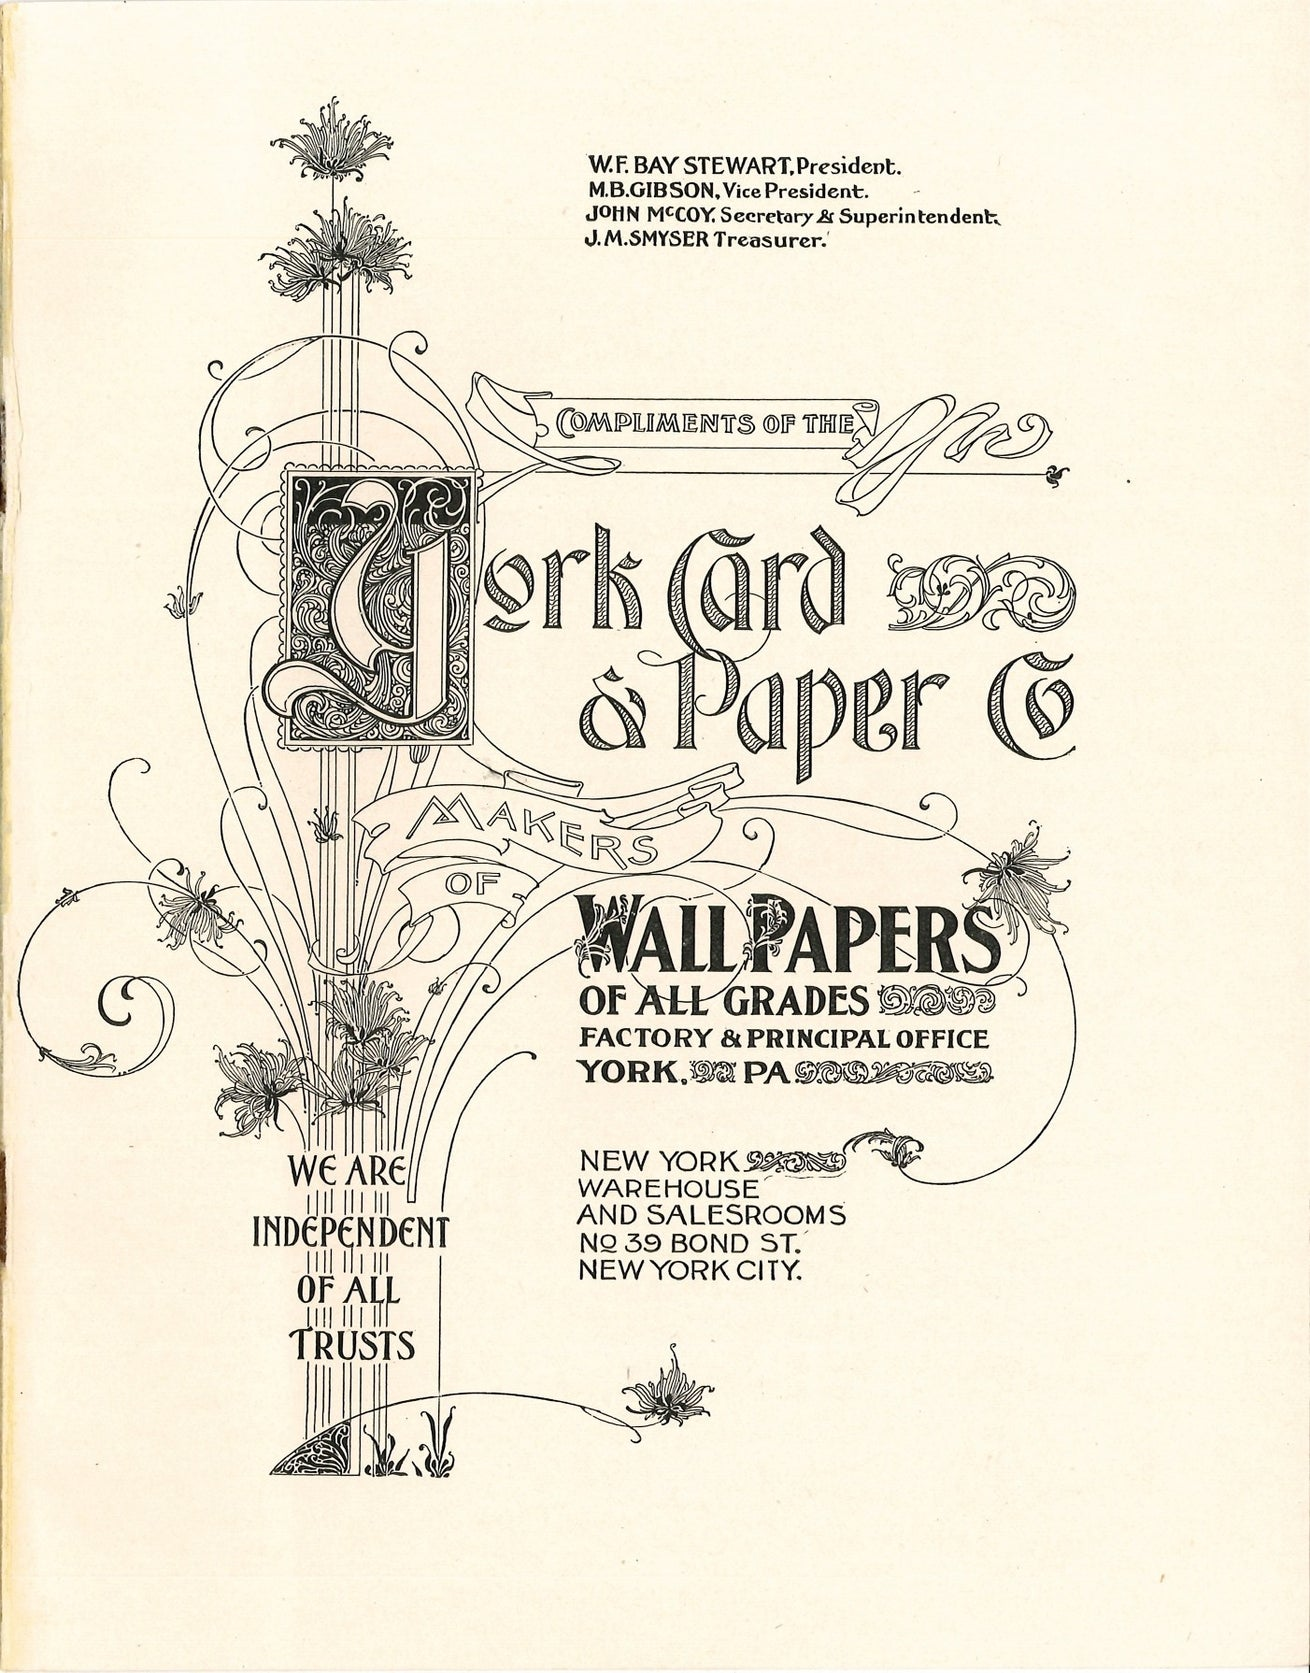 c.1896 York Card & Paper Co Title Page